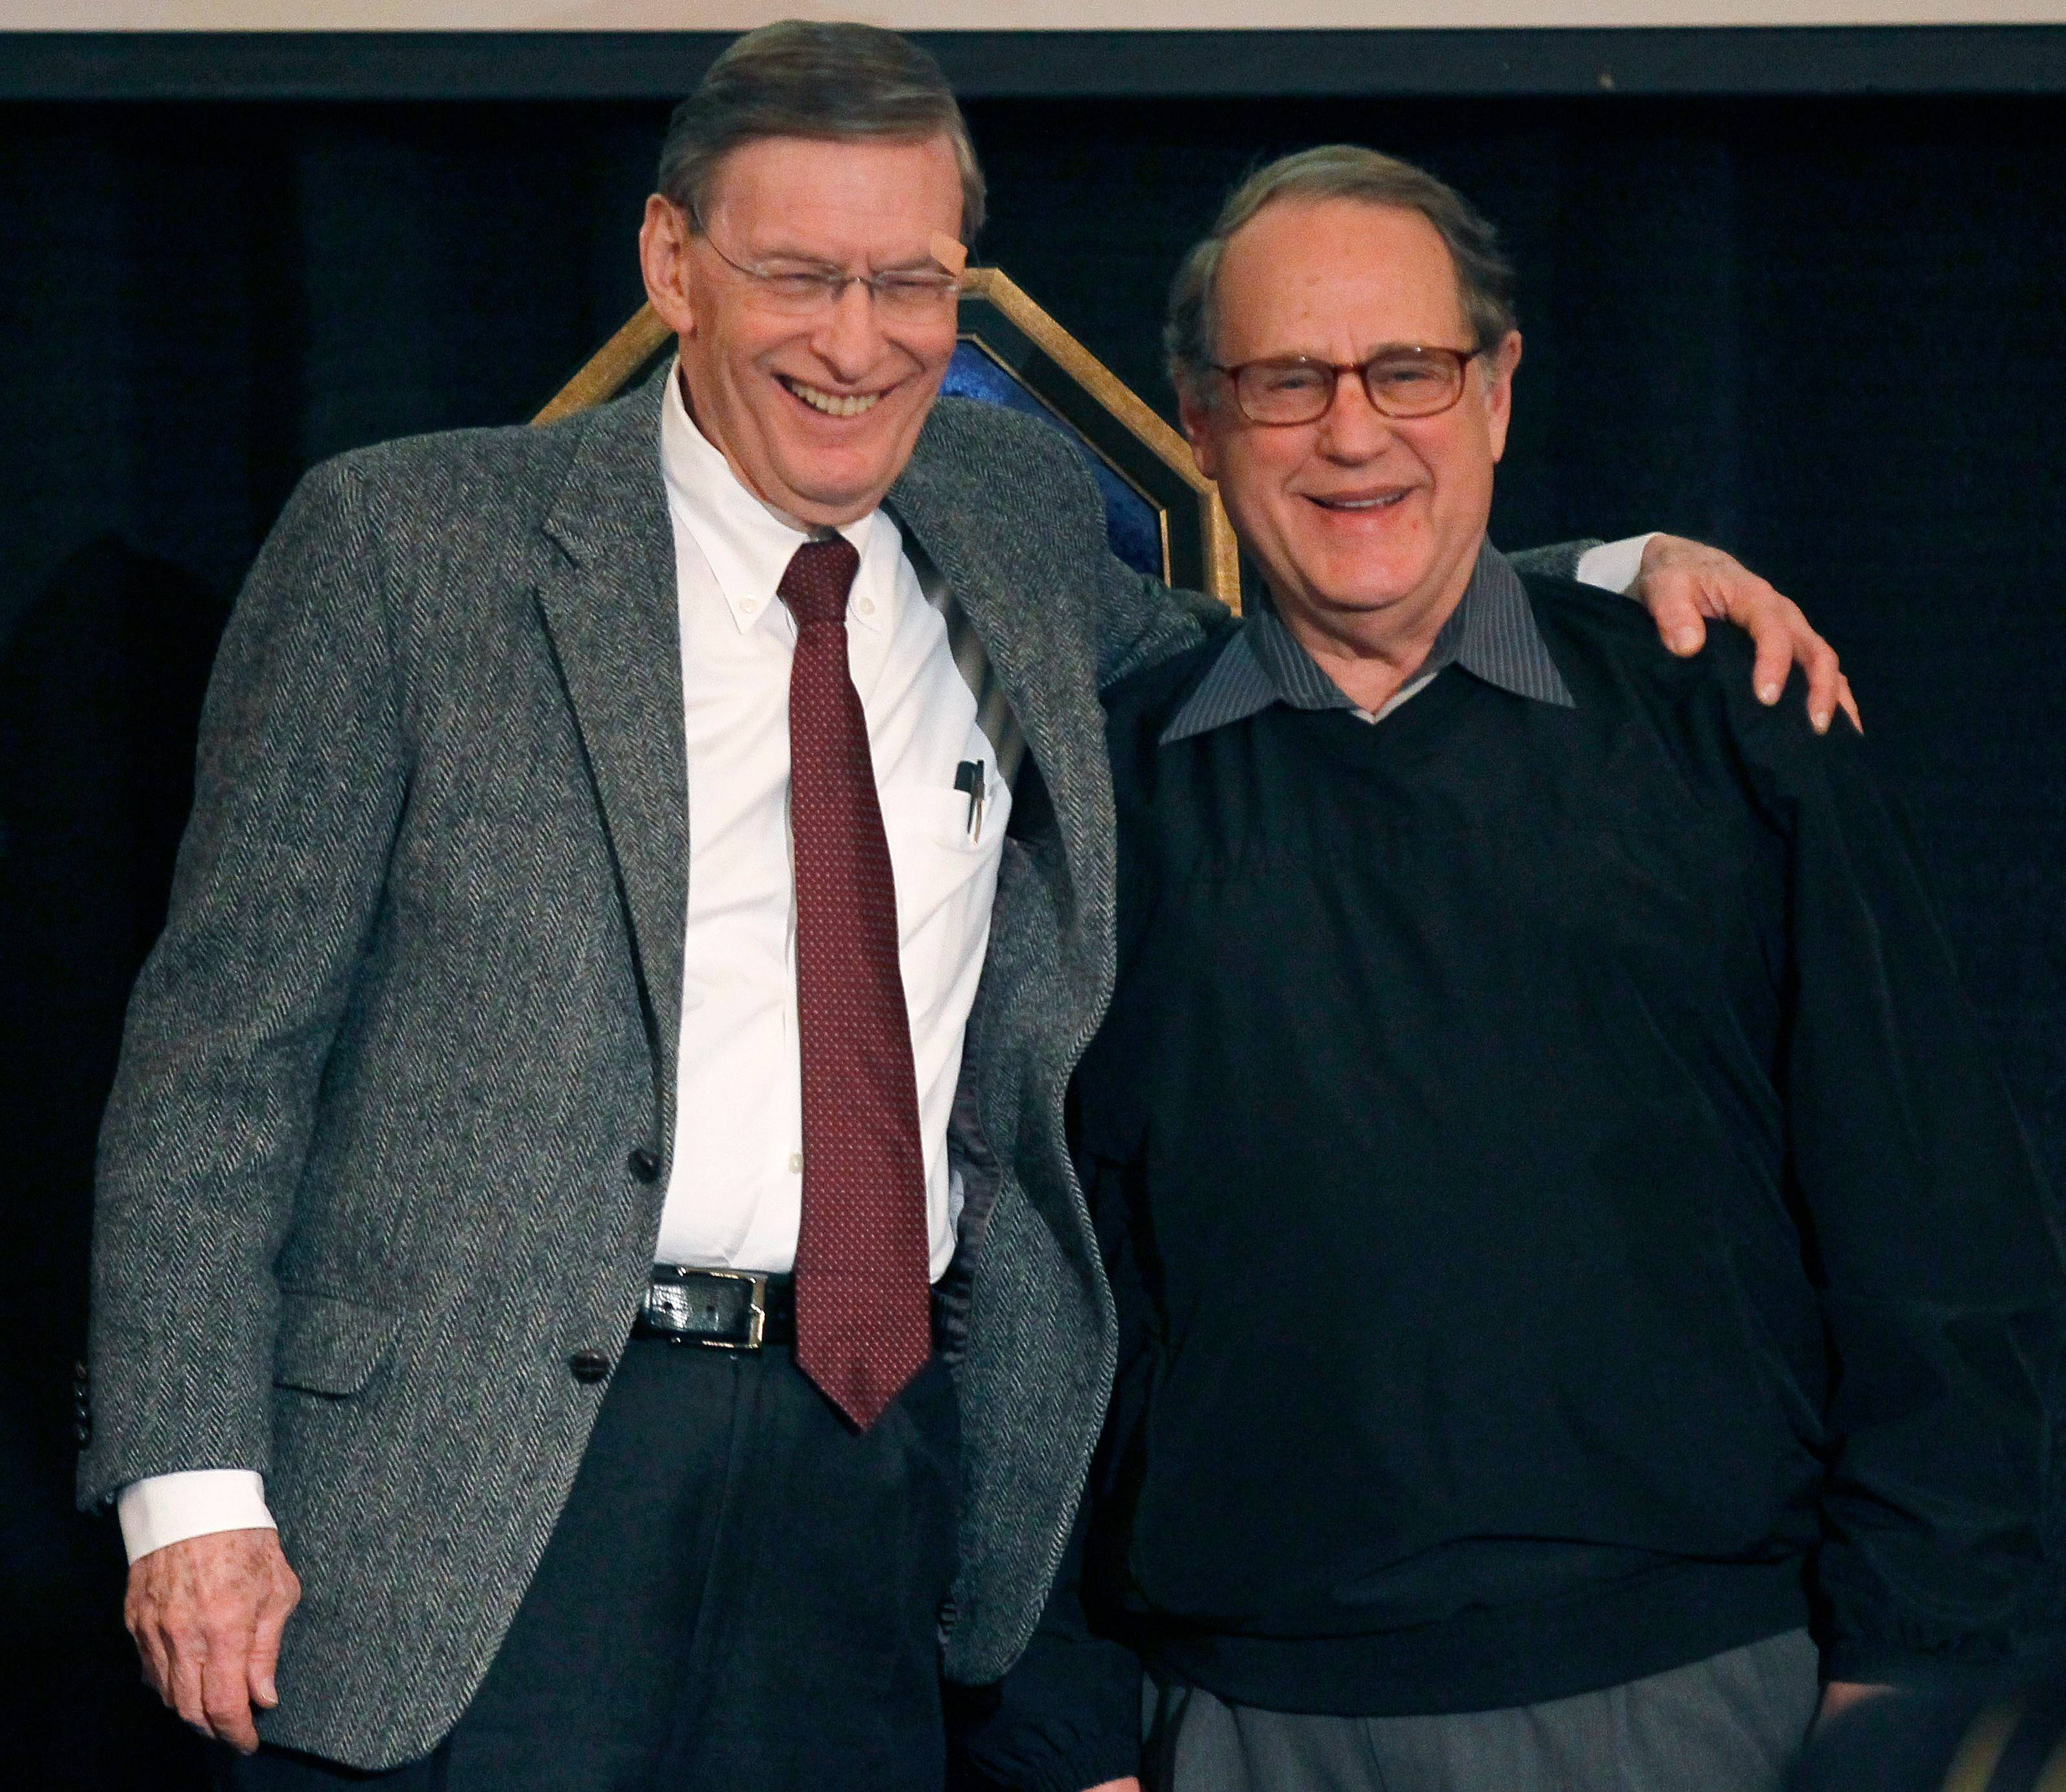 Baseball Commissioner Bud Selig, left, embraces Chicago White Sox chairman Jerry Reinsdorf during the White Sox baseball fan festival on Friday, Jan. 27, 2012, in Chicago.